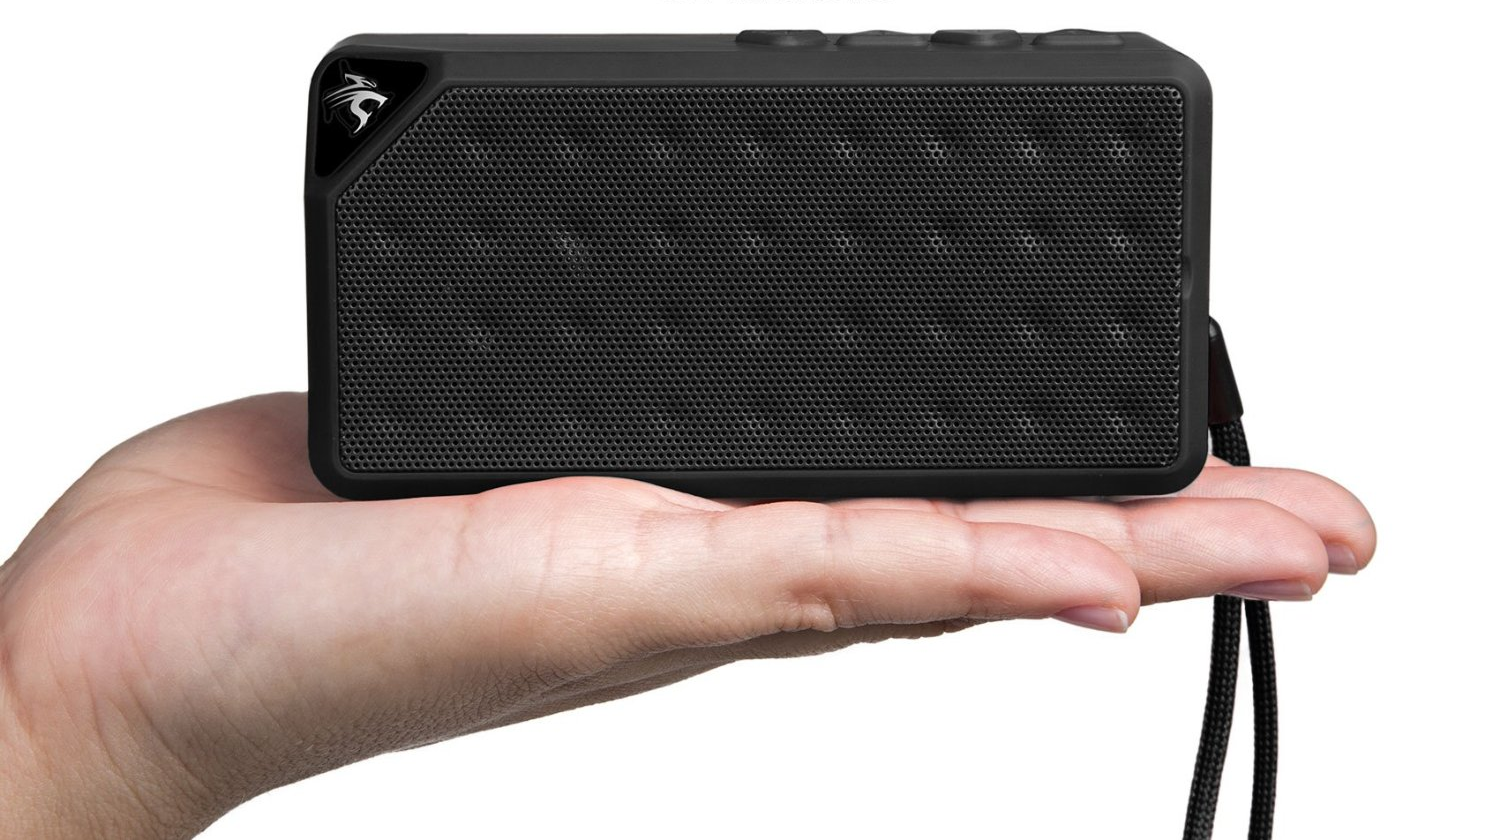 Sentey B-Trek S2 Bluetooth speaker review